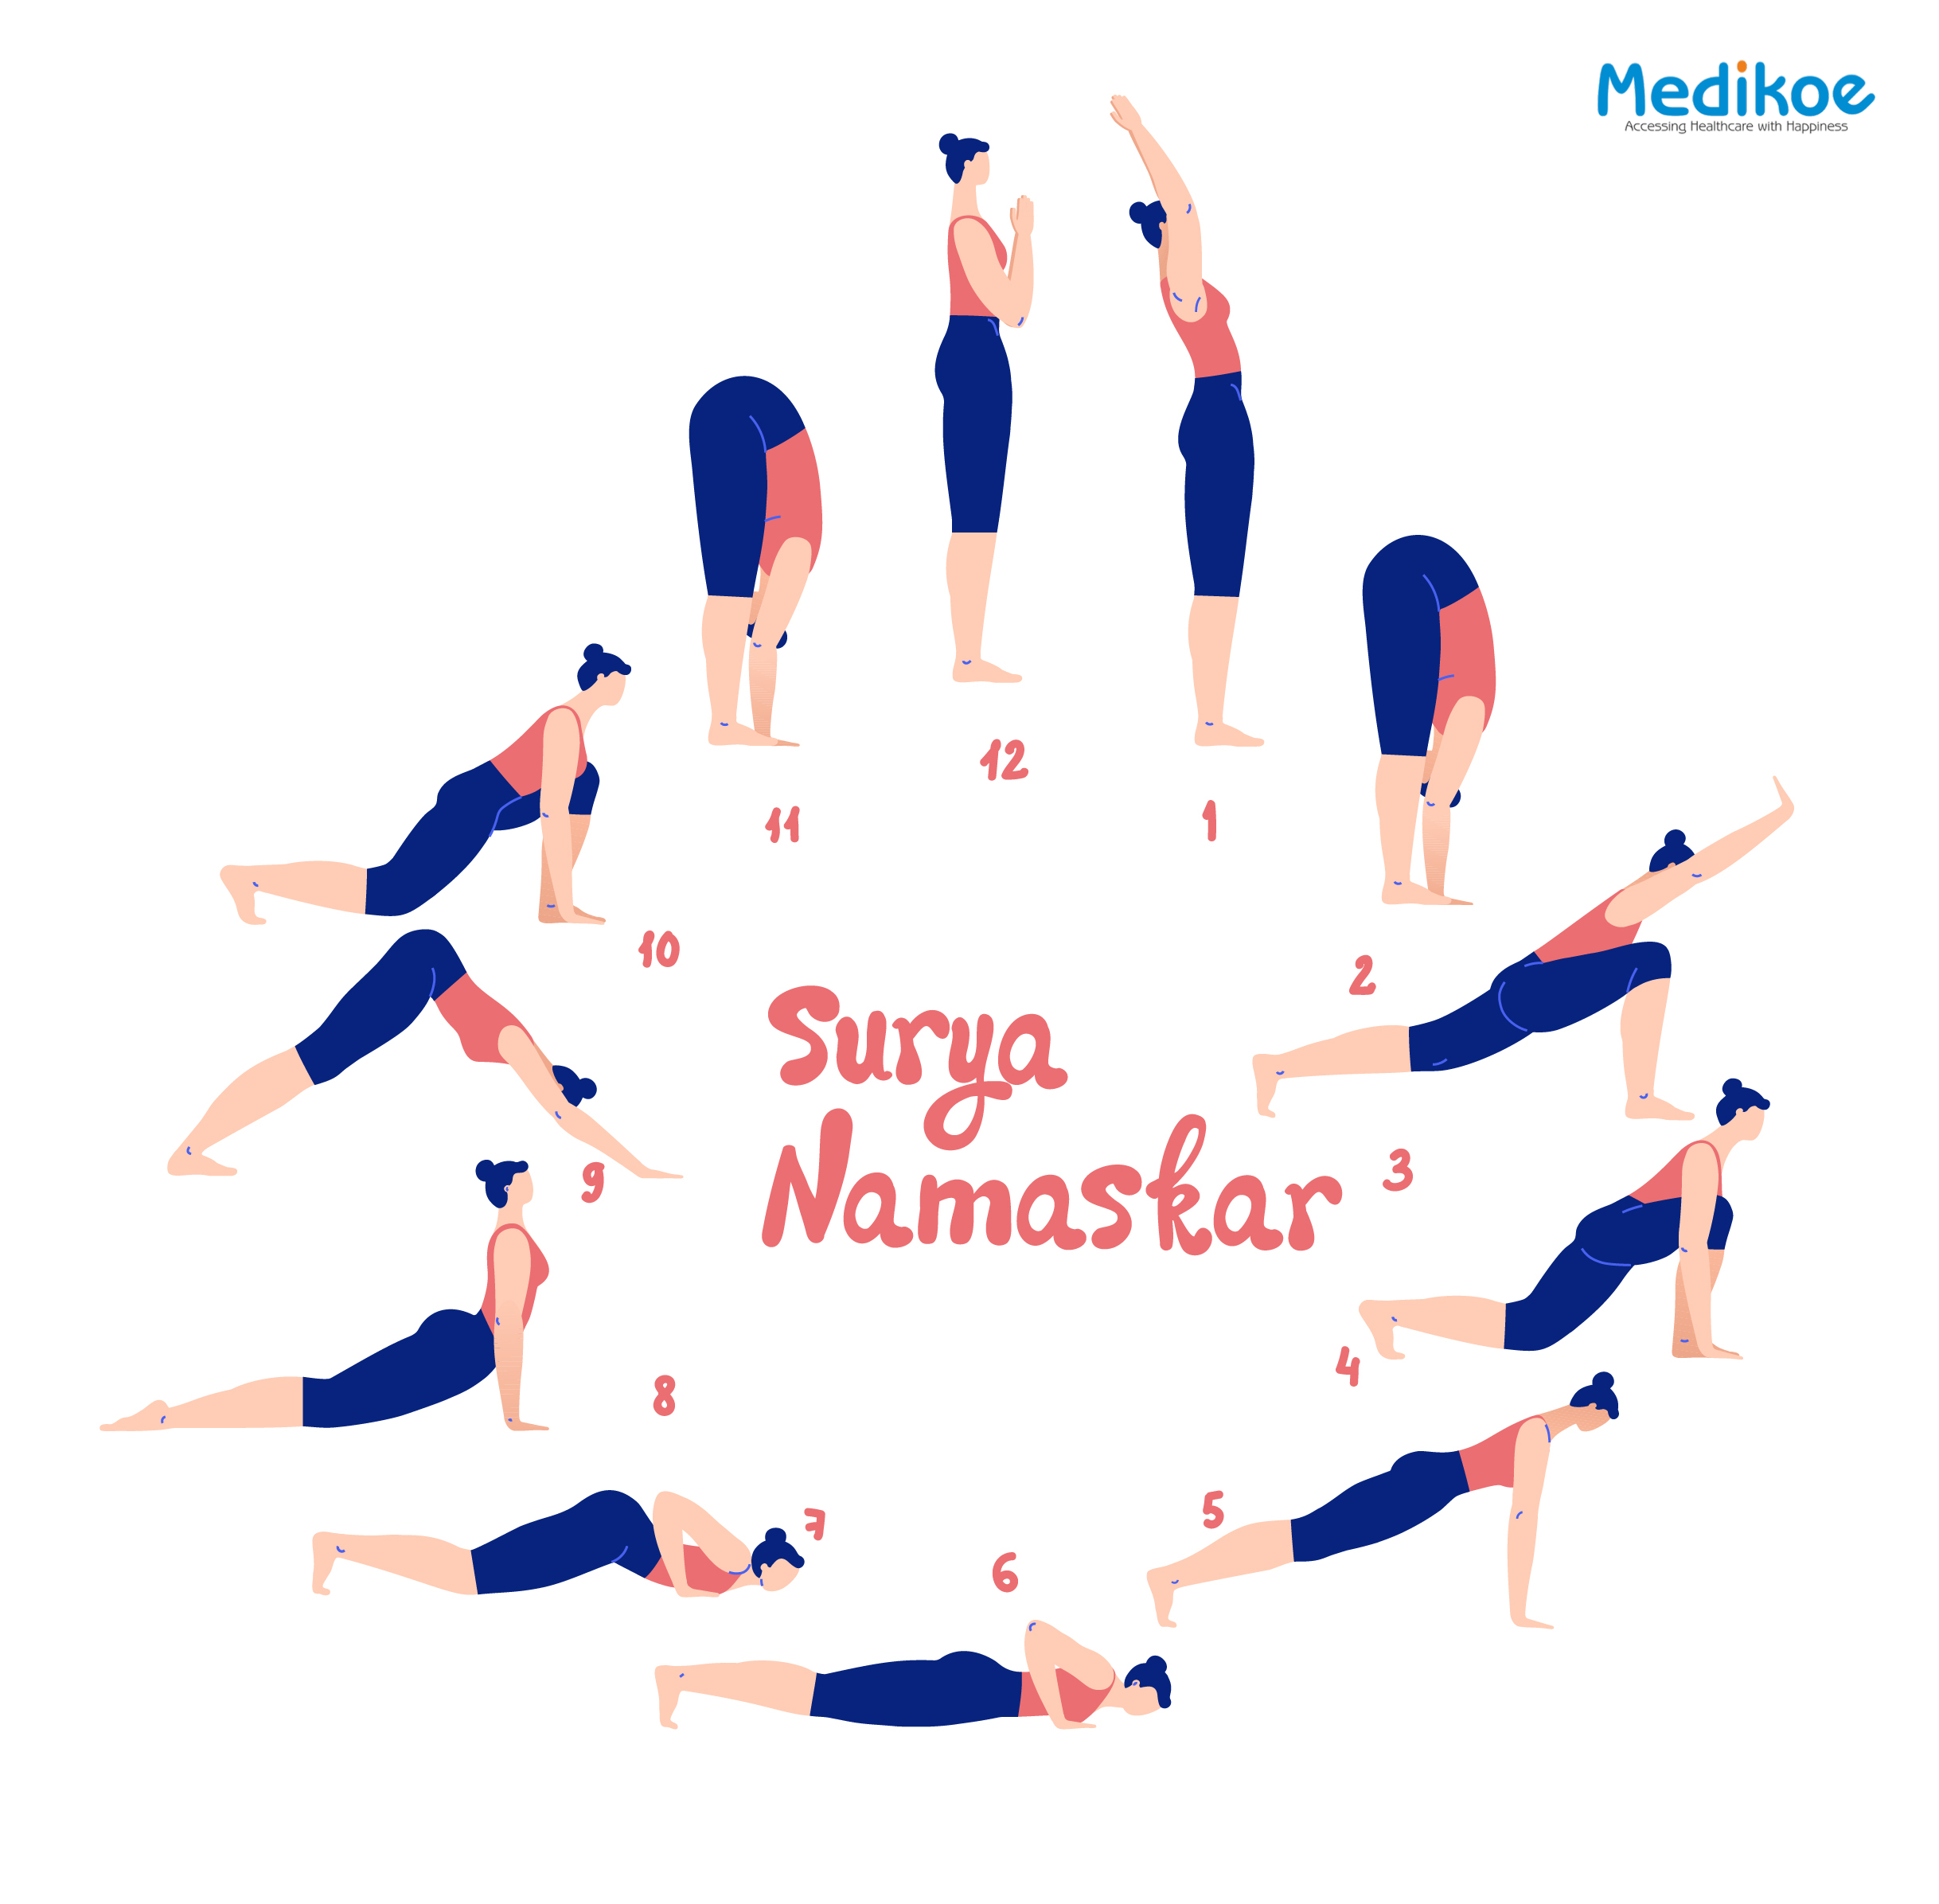 HOW TO DO THE SURYA NAMASKAR?